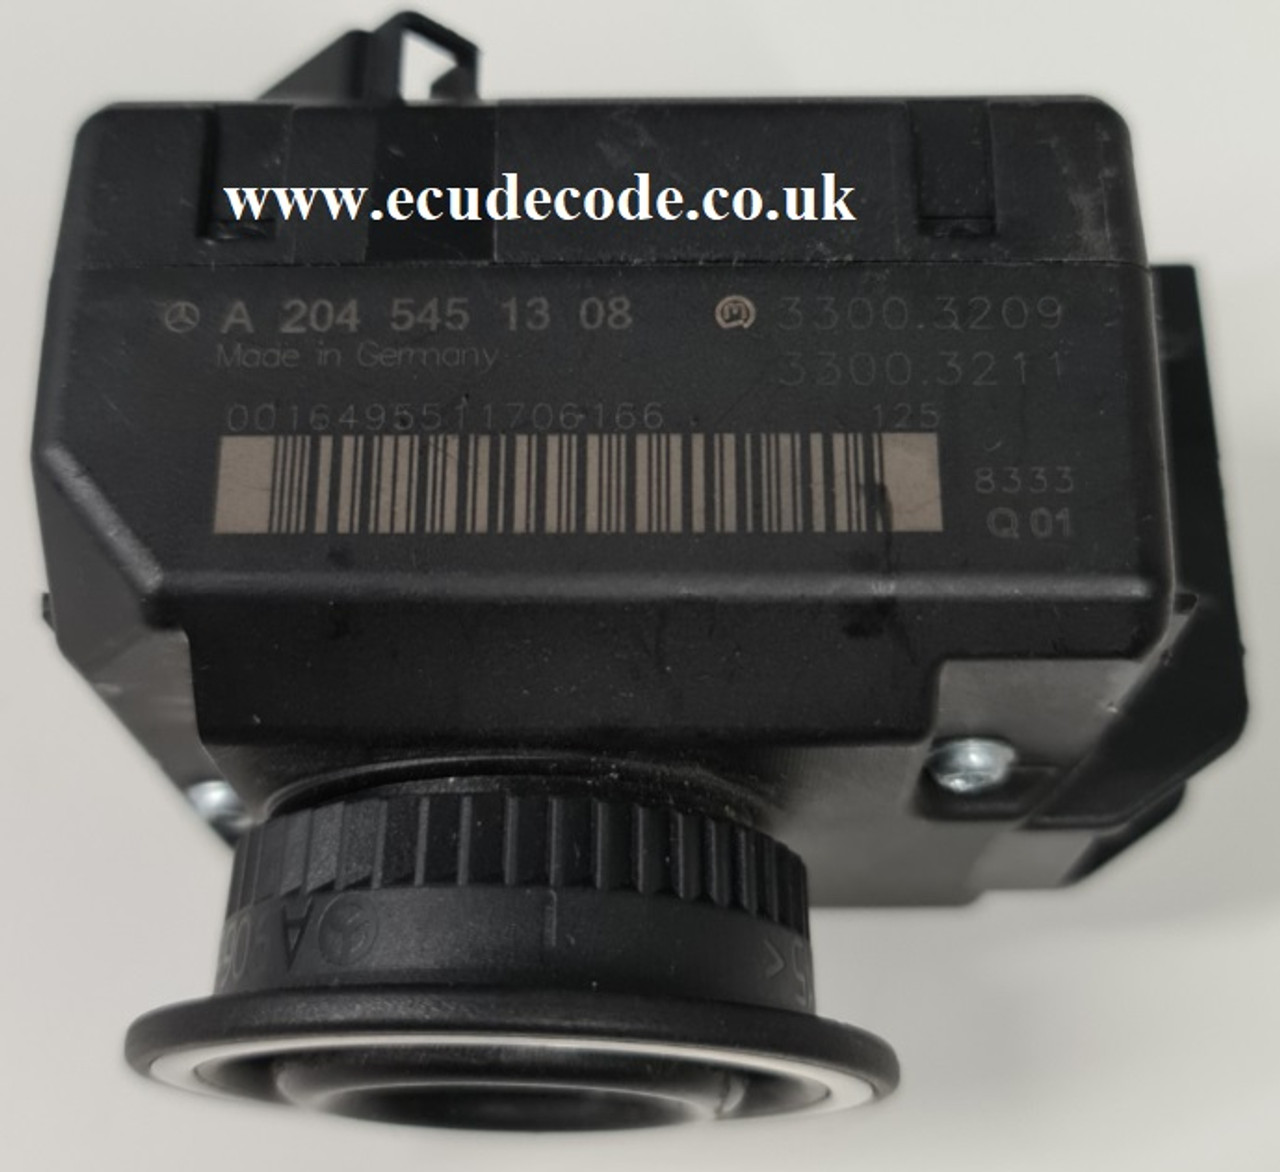 A2045451308 | A 204 545 13 08 | 3300.3209 | Mercedes Electronic Ignition Switch ( EIS ) with Cloning Service